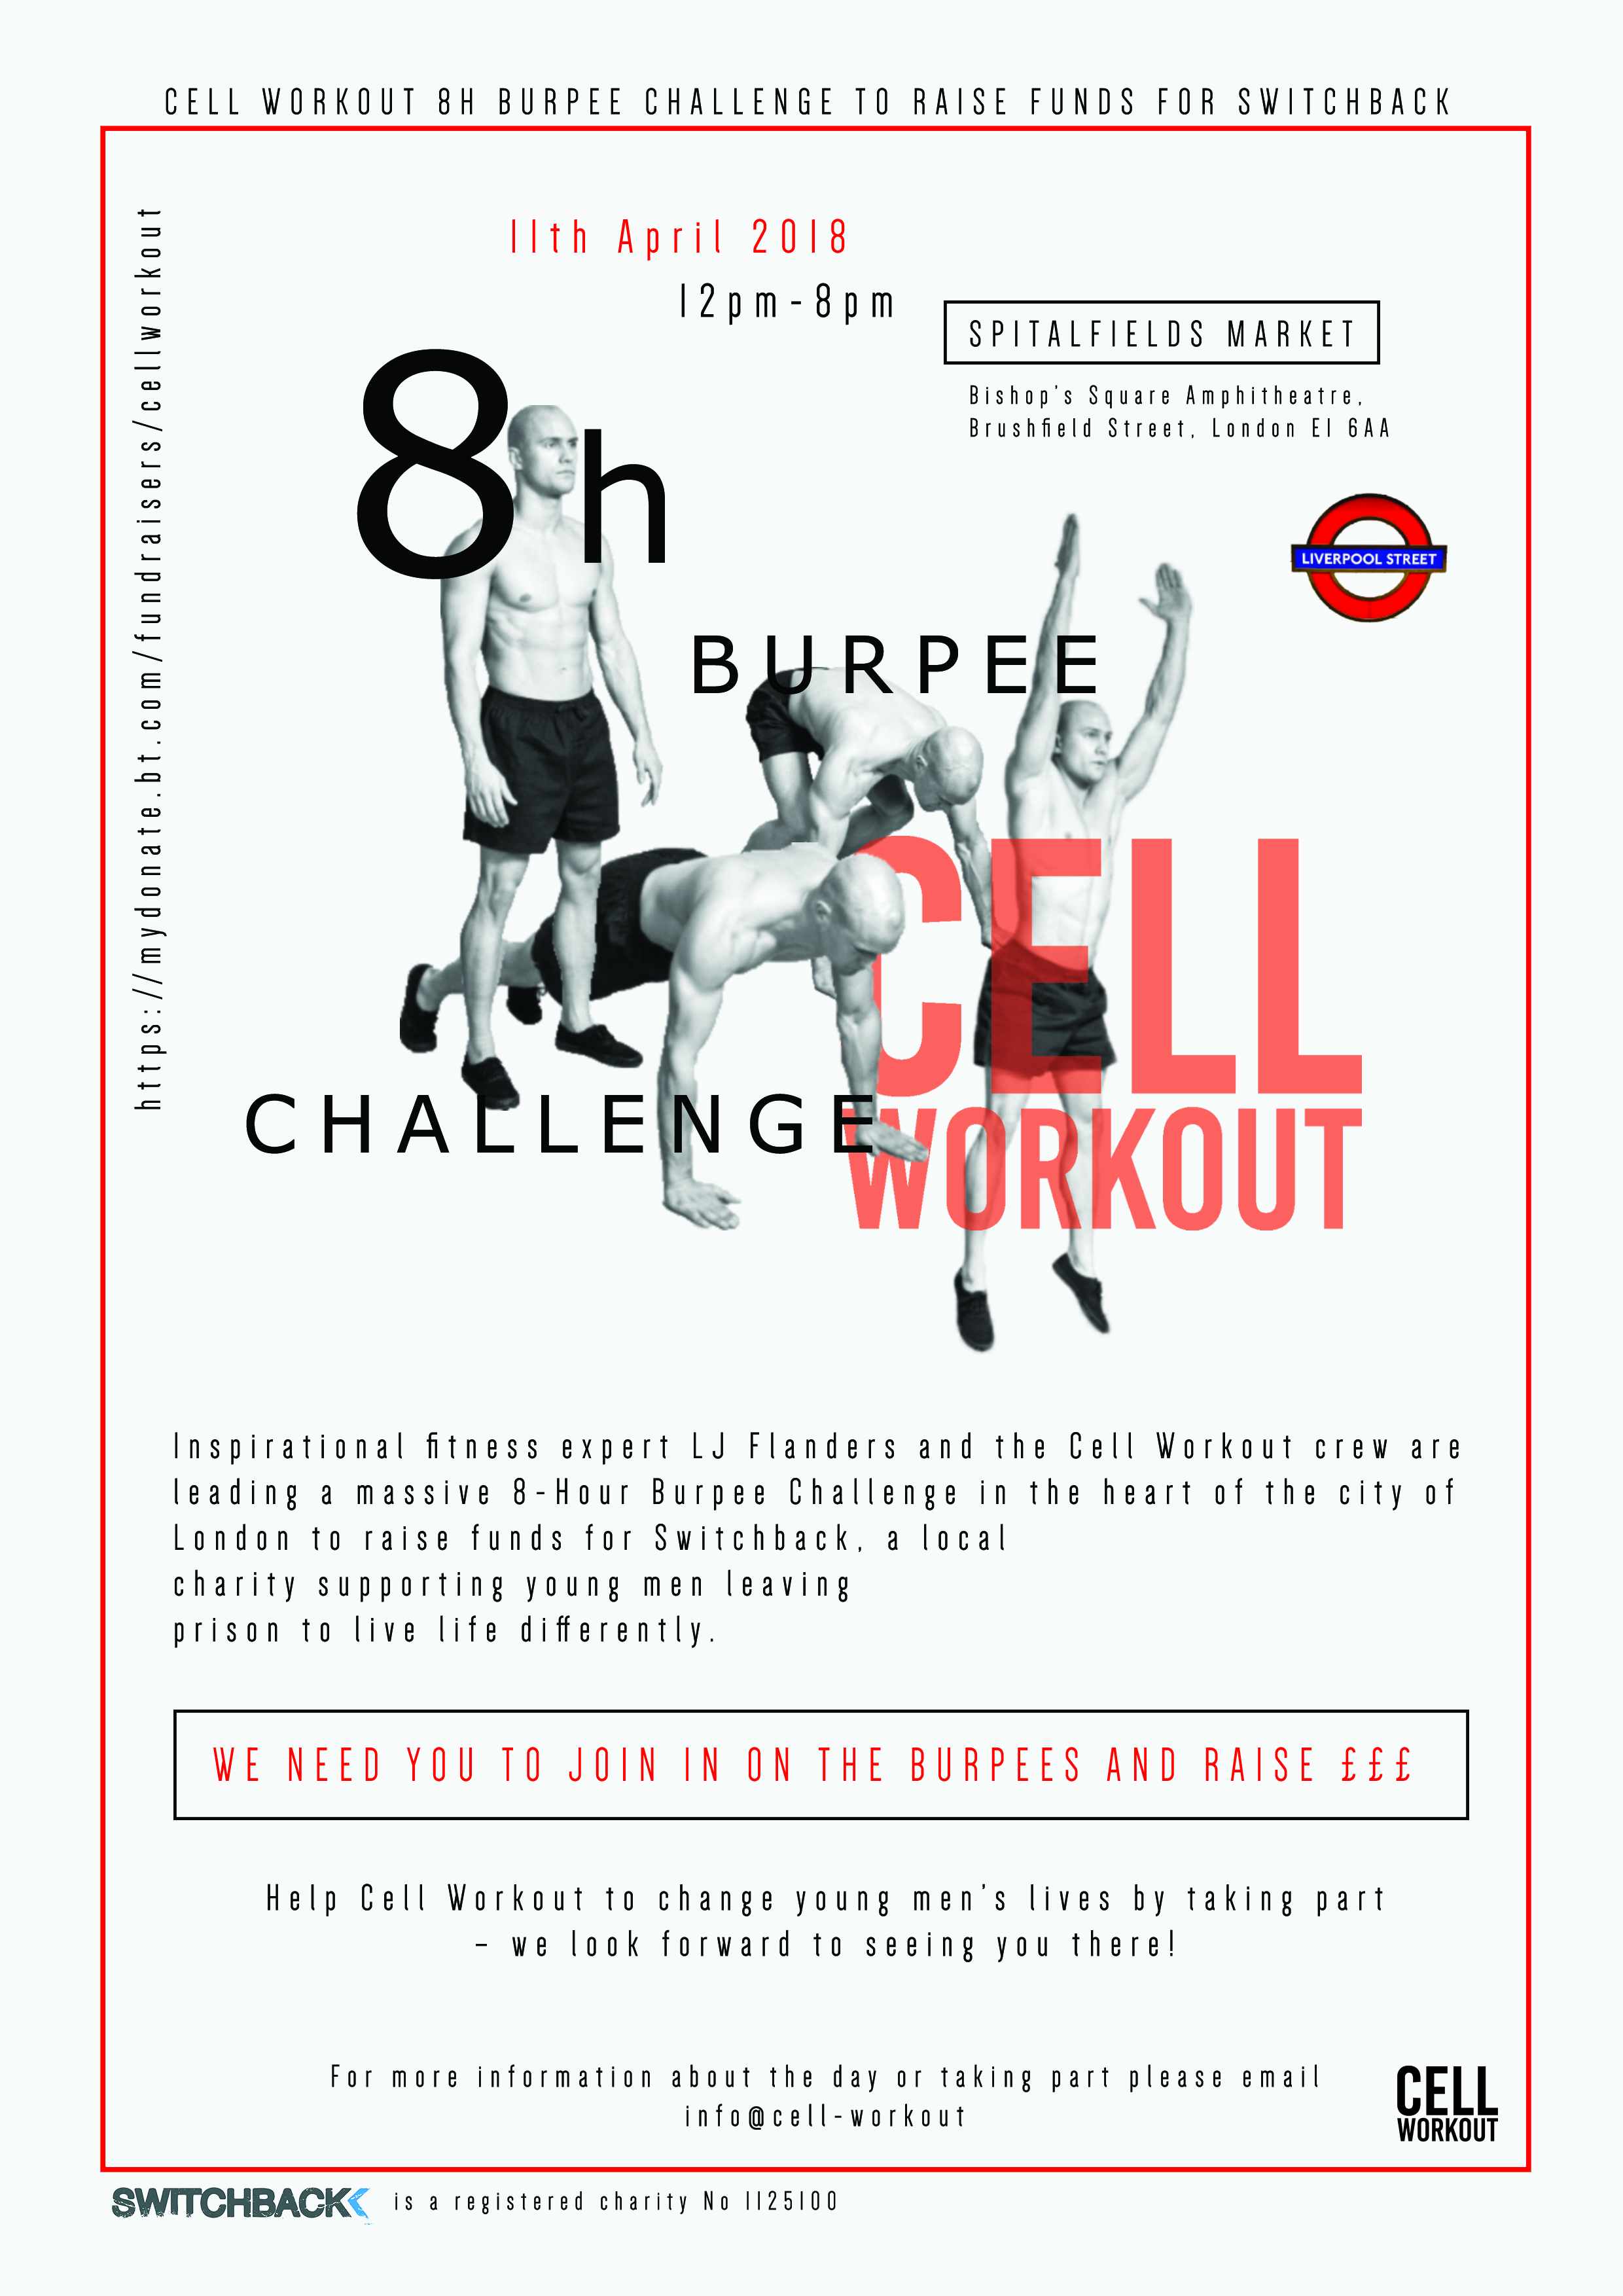 cell workout gets physical for switchback get your burpees on